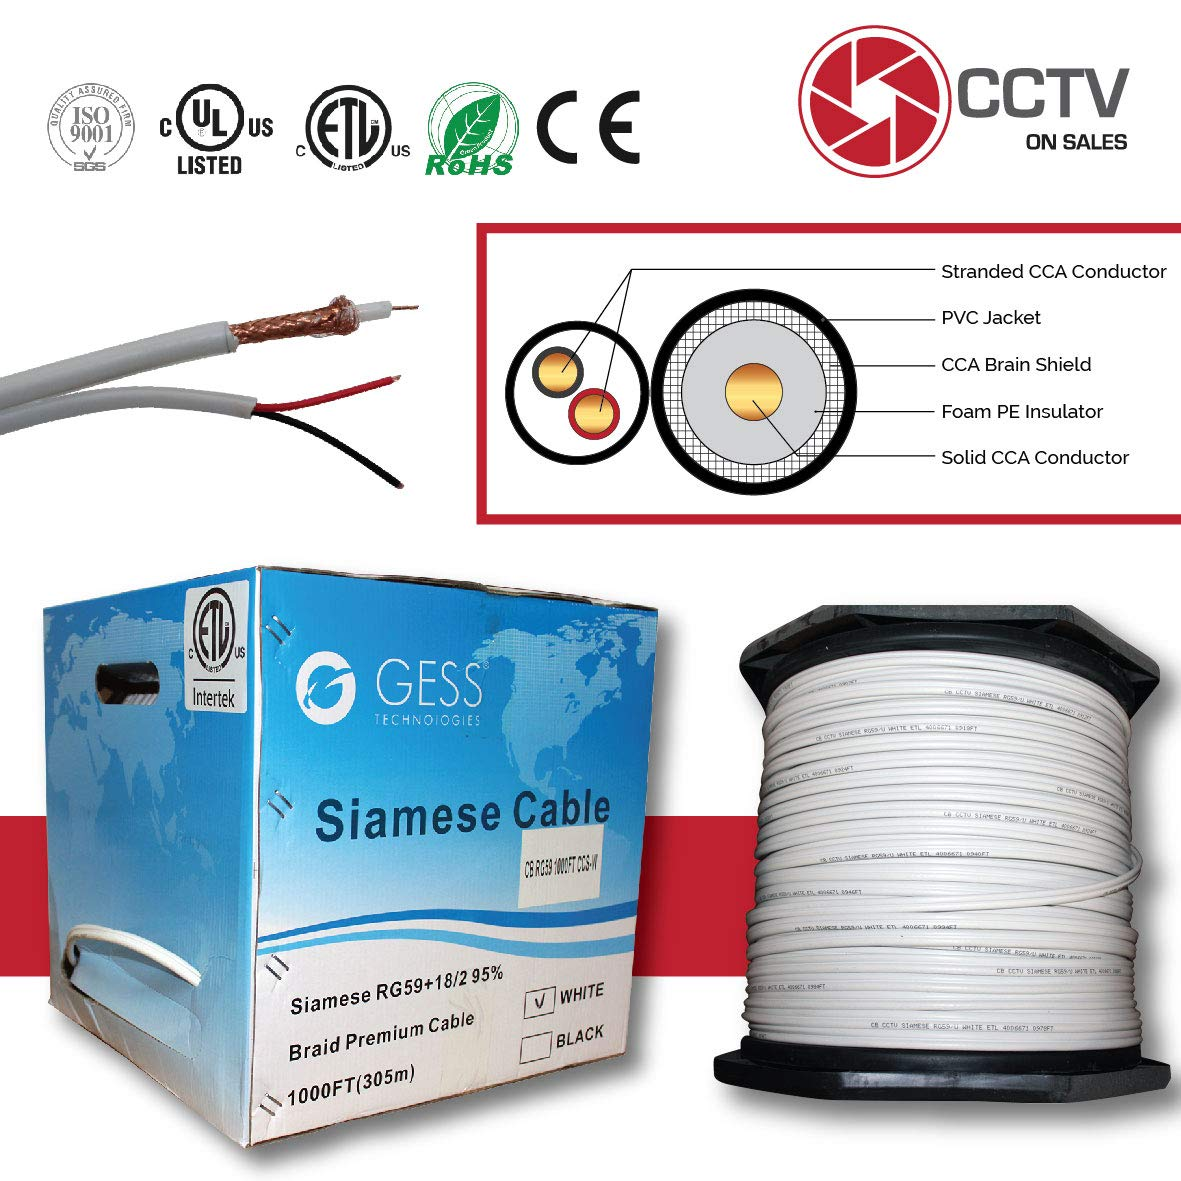 CCTVOnSales RG59 1000FT Bulk Siamese Combo Coaxial Cable CCS Copper Clad Steel White, 20AWG Video Plus 18/2 Power Cable, CMR Rated (in-Wall Installations) Warranty Up to 5MP ETL Listed